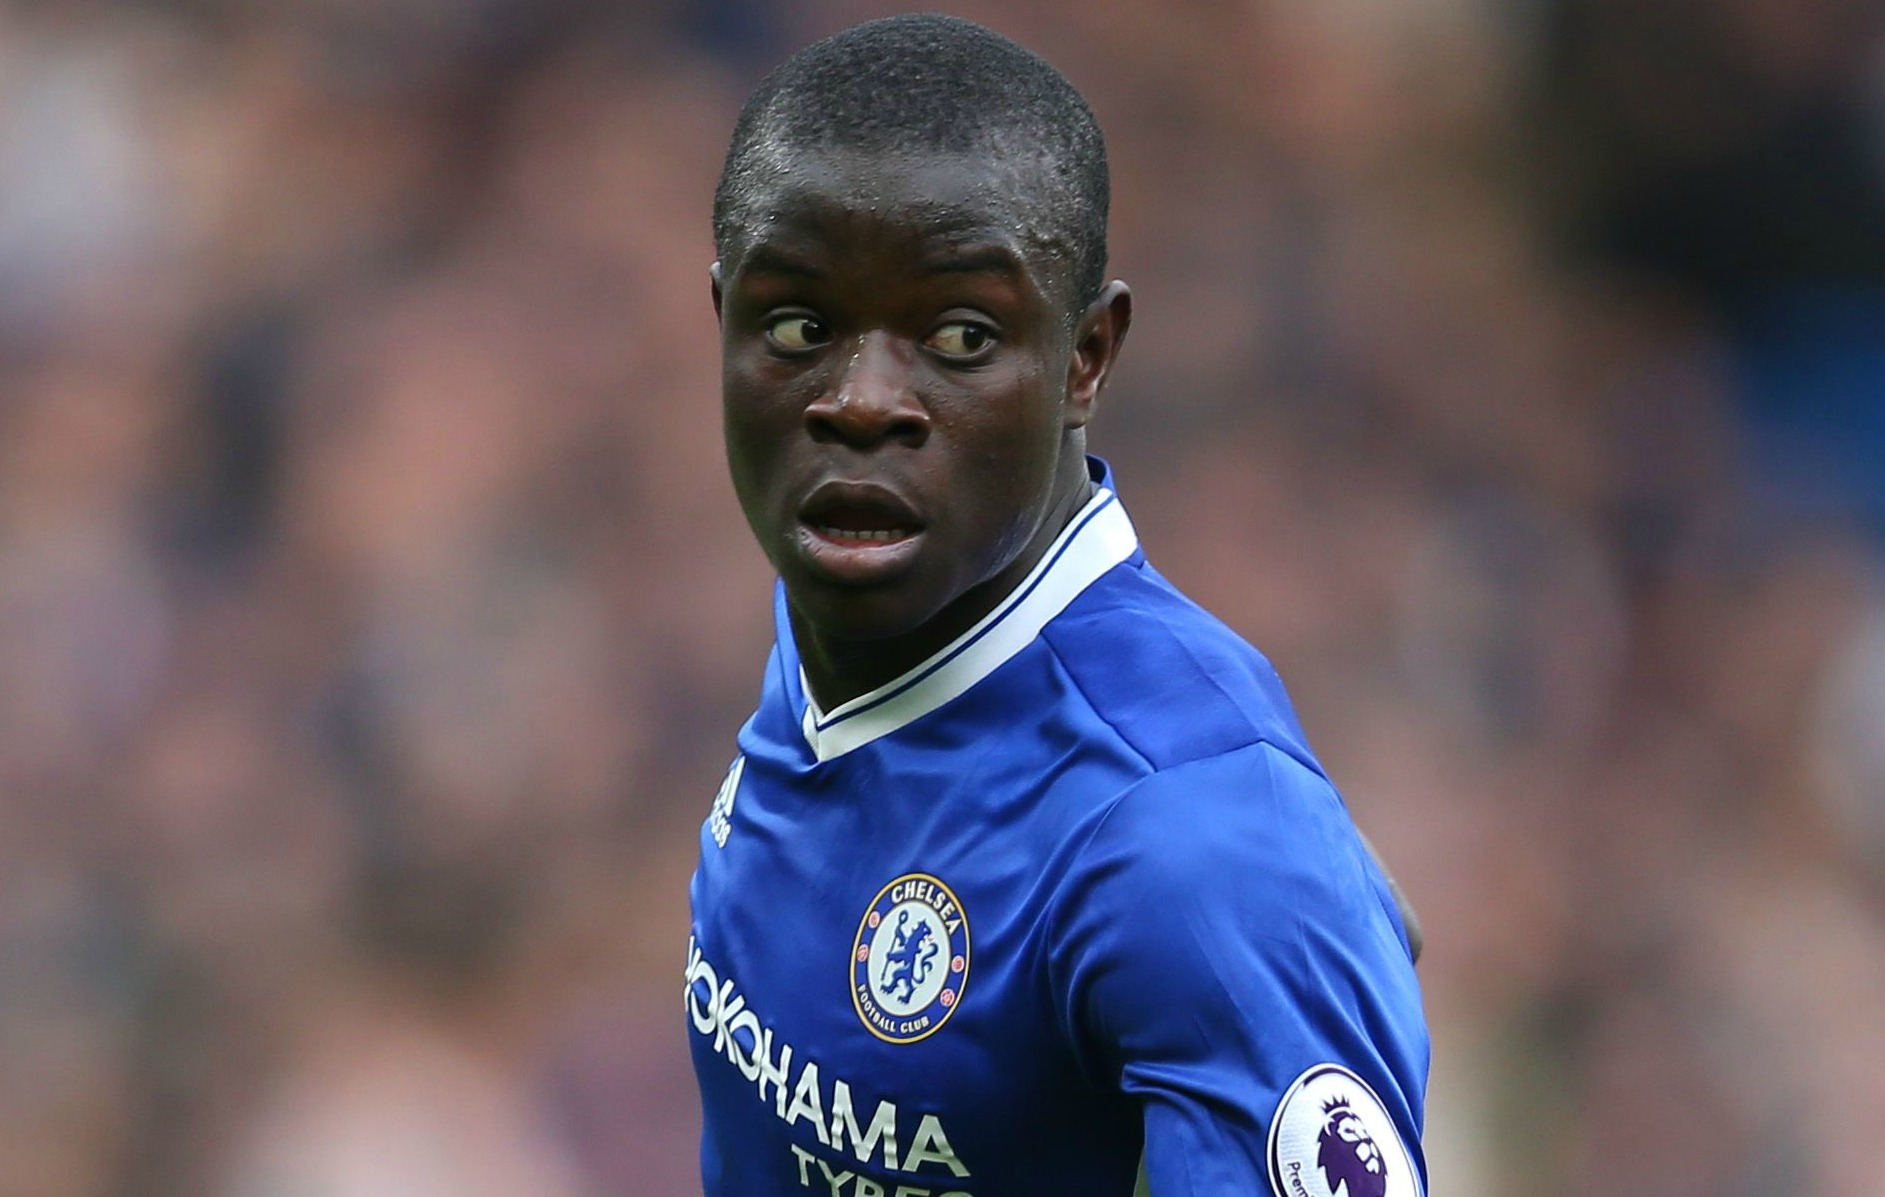 N'Golo Kante beats Chelsea teammate Eden Hazard to PFA Player of the Year Award